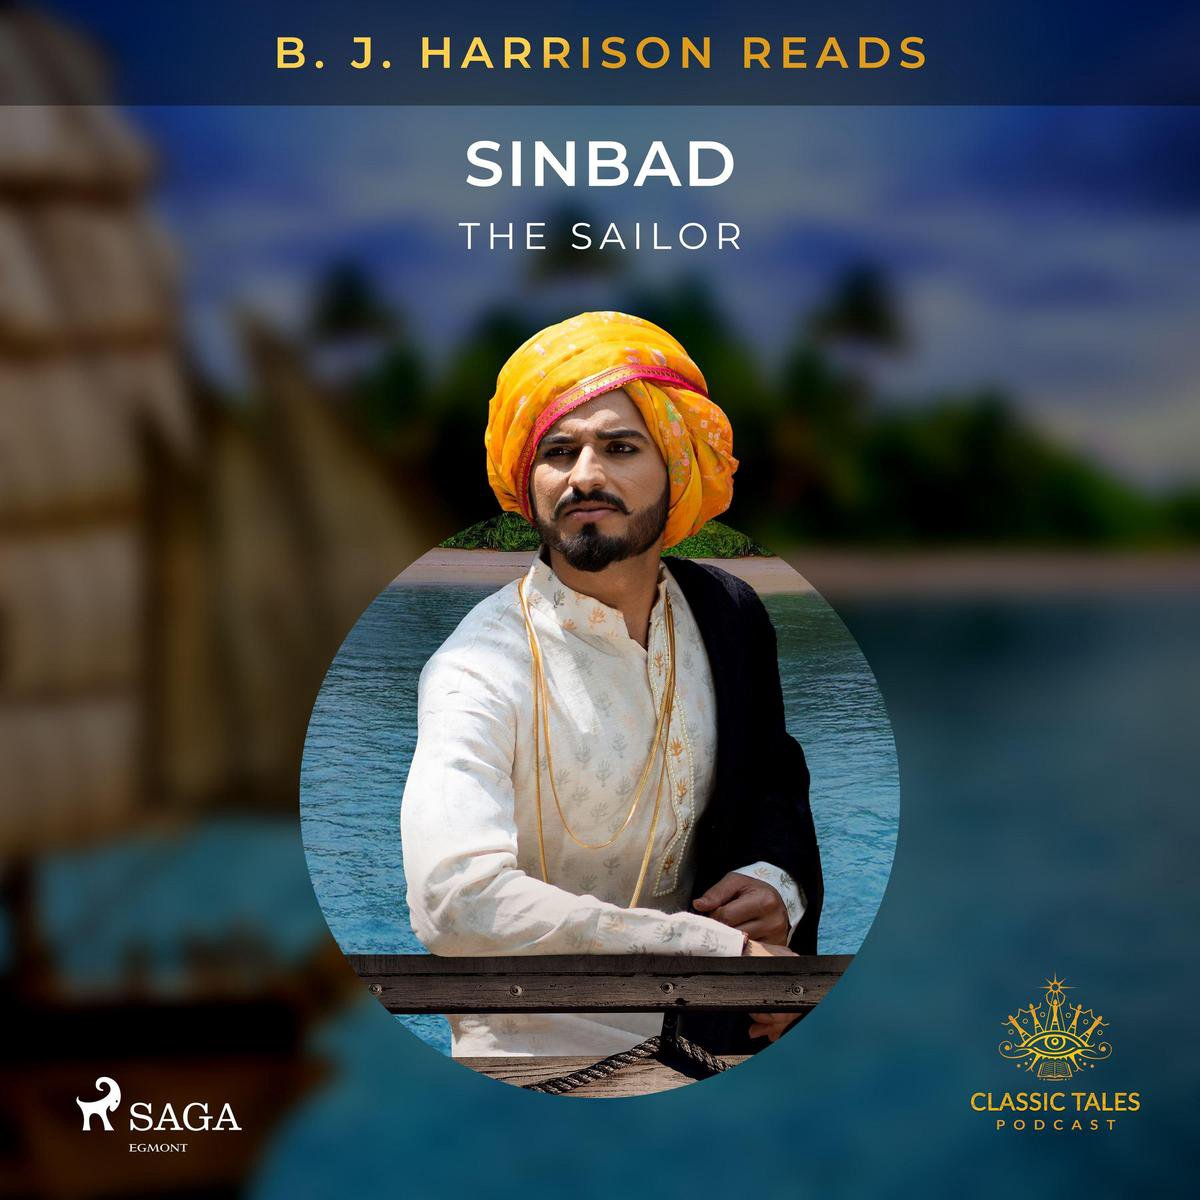 B. J. Harrison Reads Sinbad the Sailor